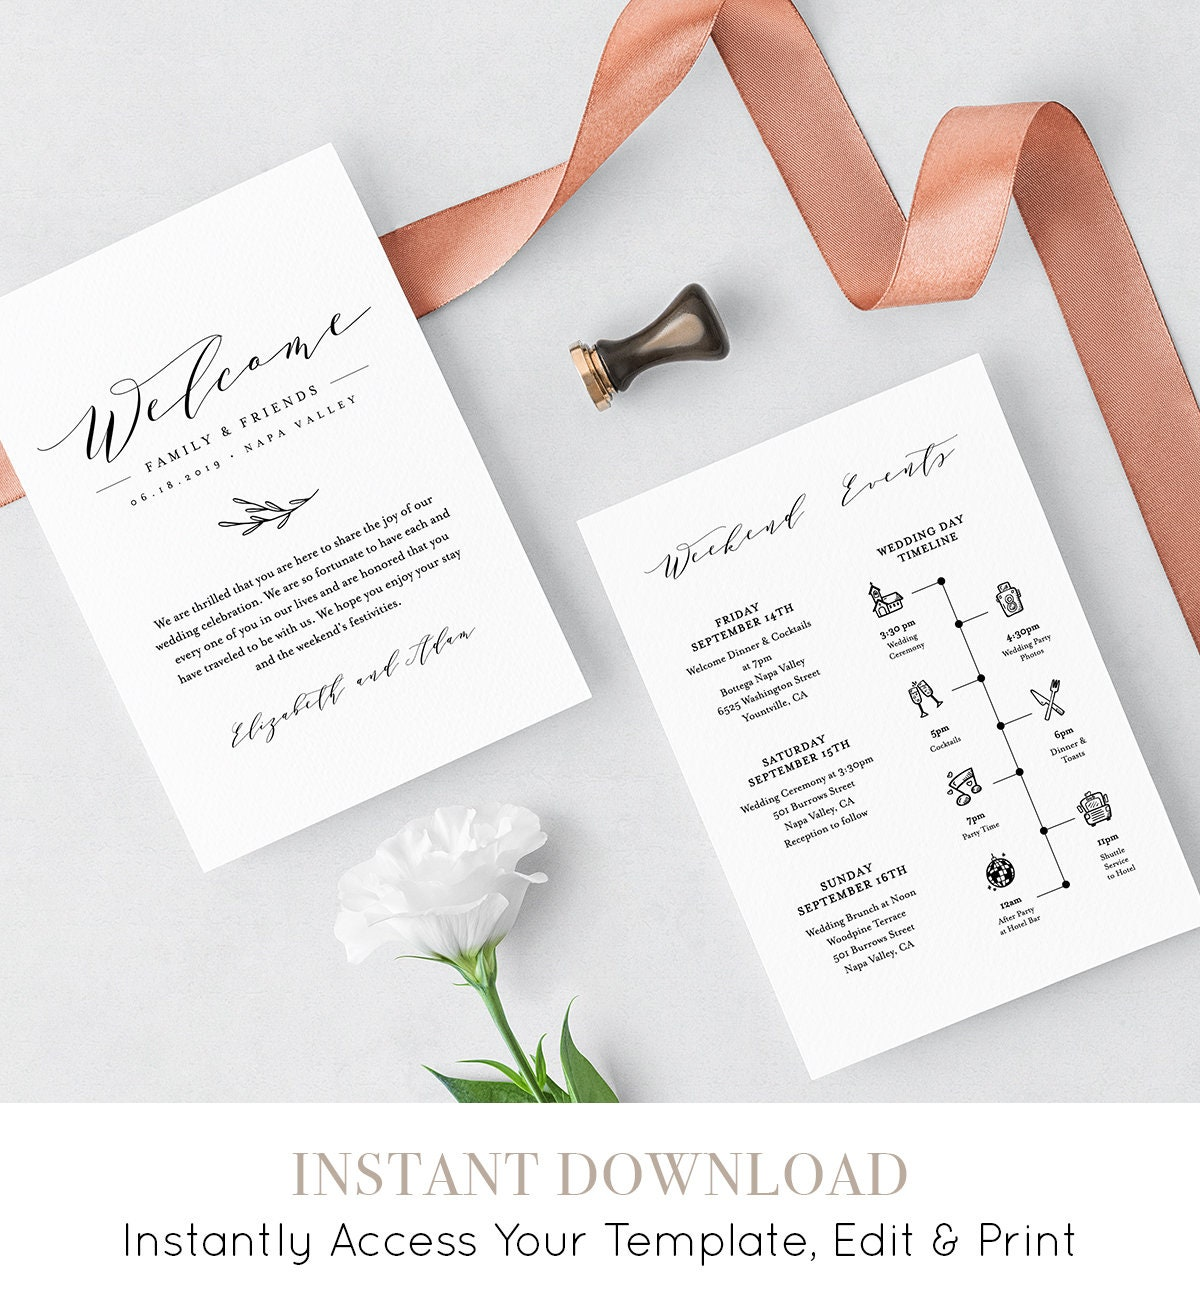 wedding itinerary welcome letter template printable welcome bag note order of events agenda icon timeline 100 editable 037 110wb